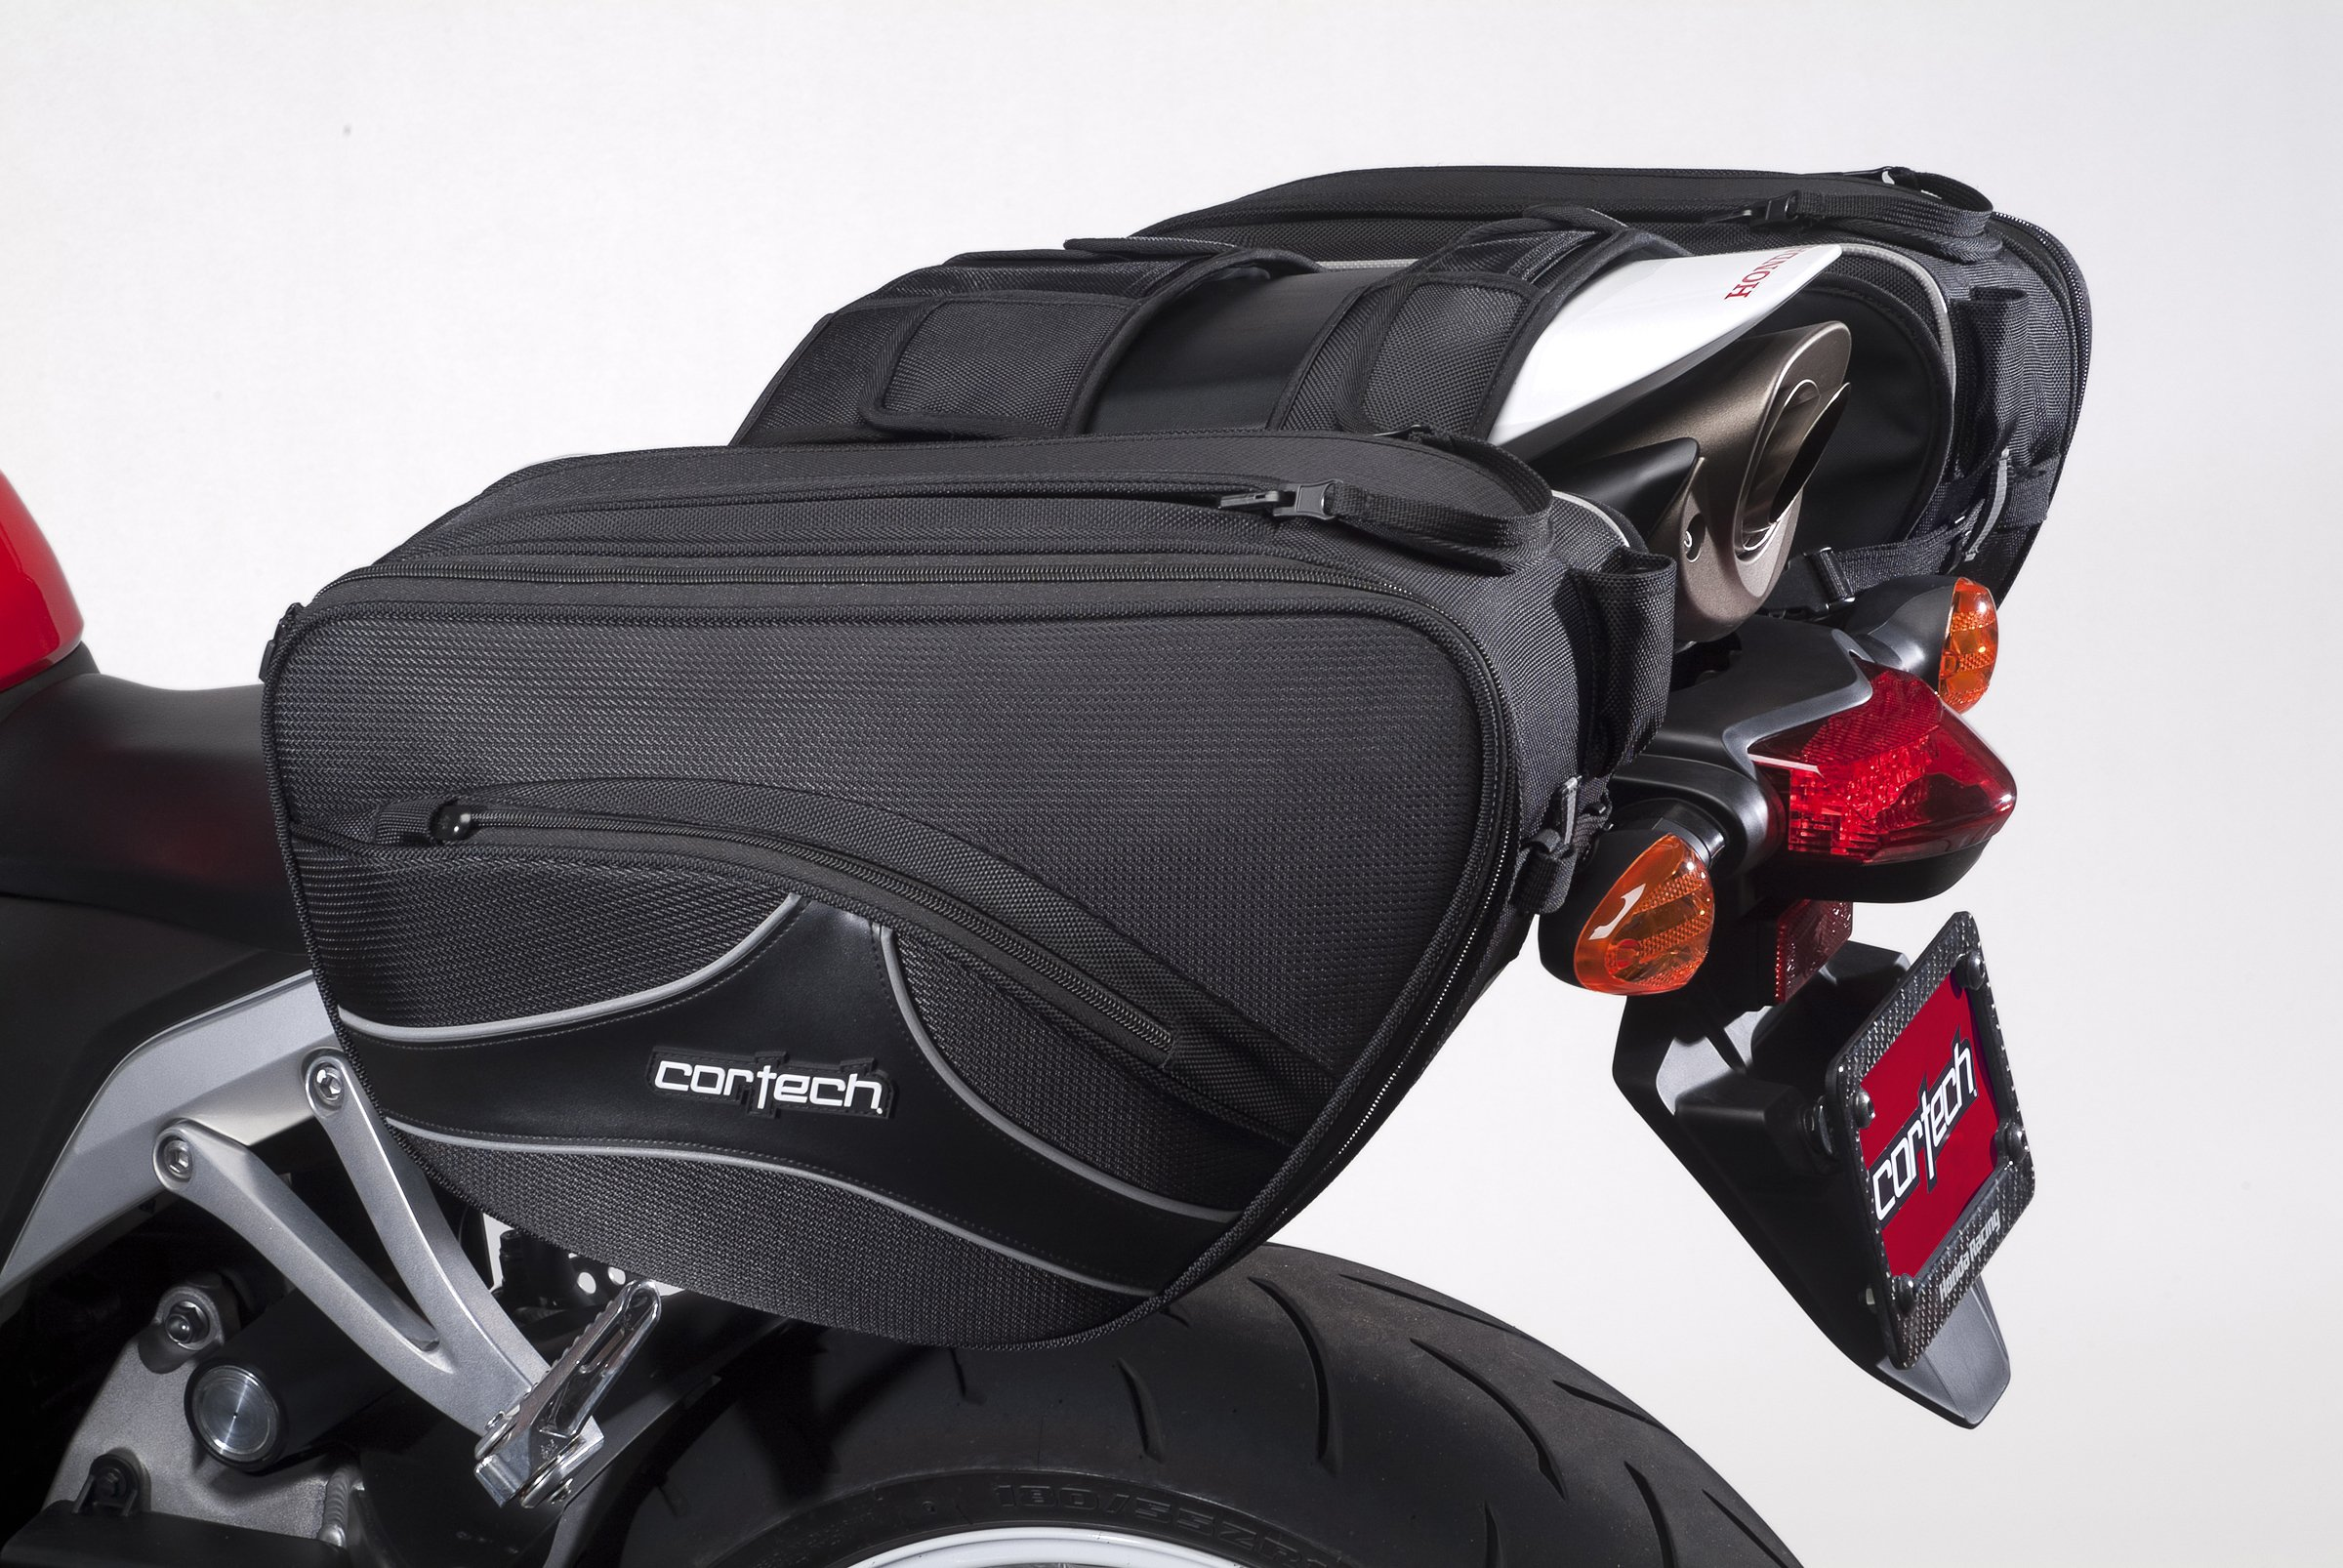 Cortech 8230-0305-36 Black Super 2.0 Saddlebag by Cortech (Image #1)